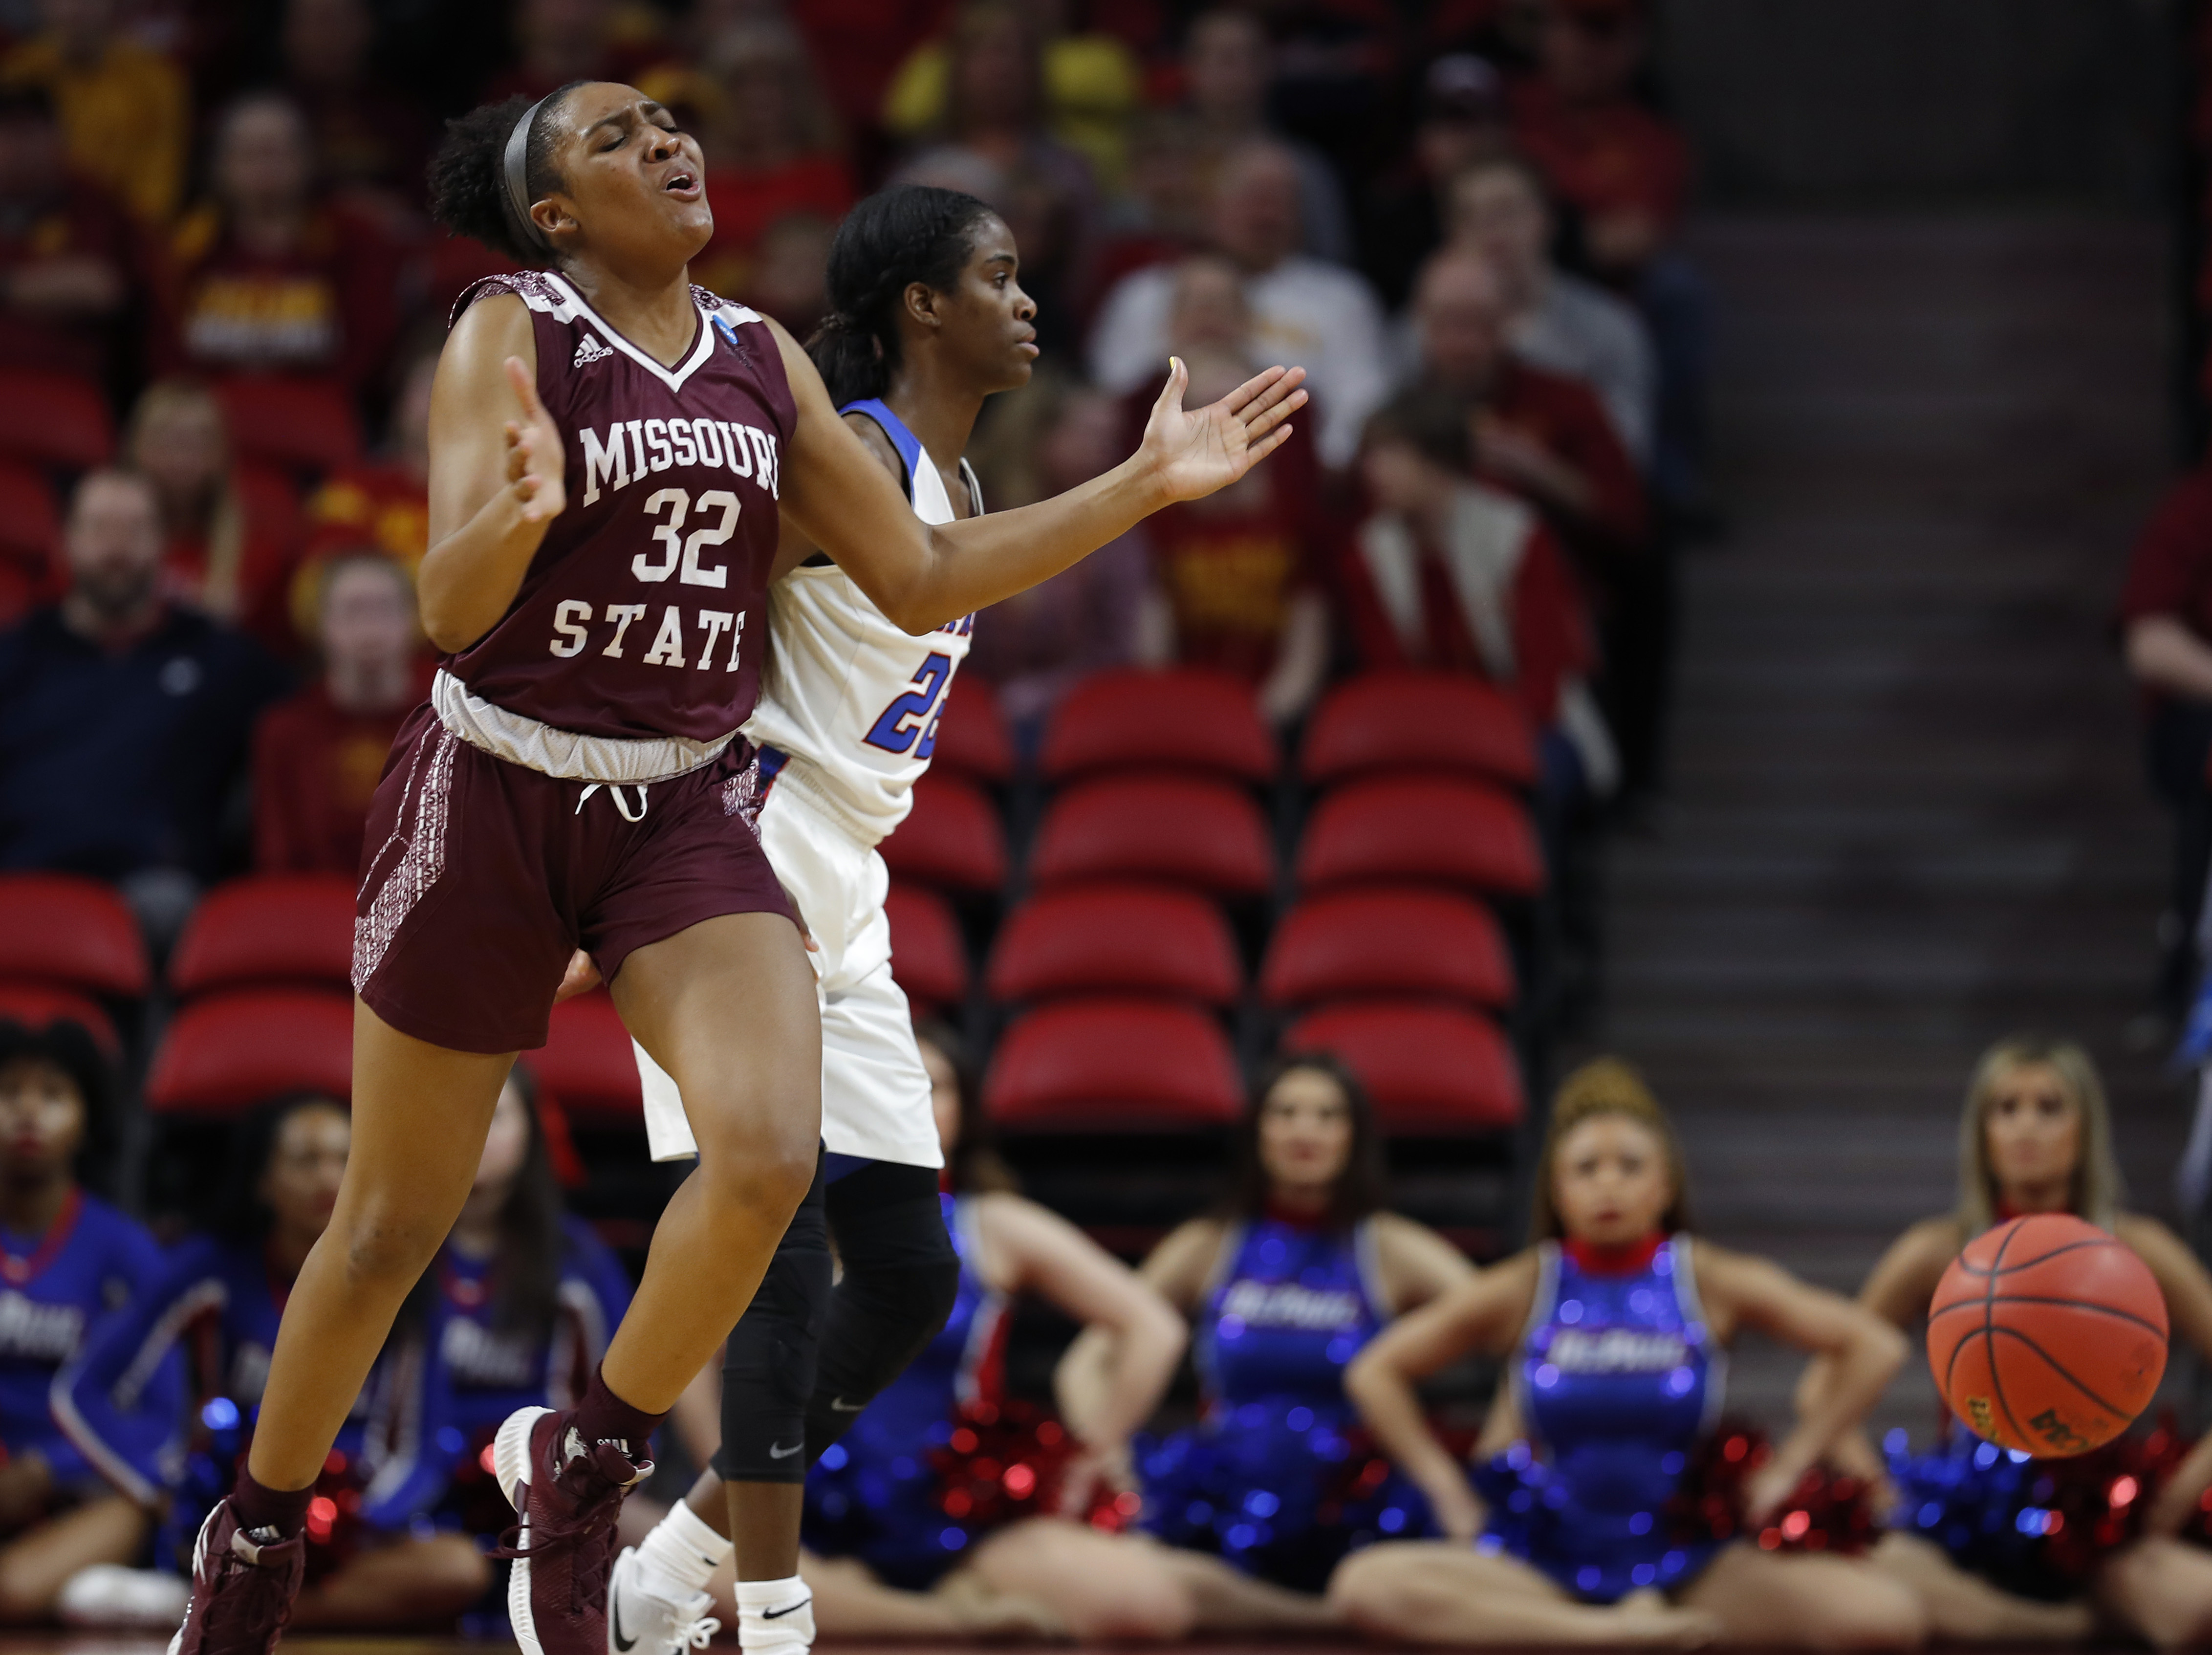 Jasmine Franklin scored 12 points and grabbed a career-high 17 rebounds to lead Missouri State over Loyola.